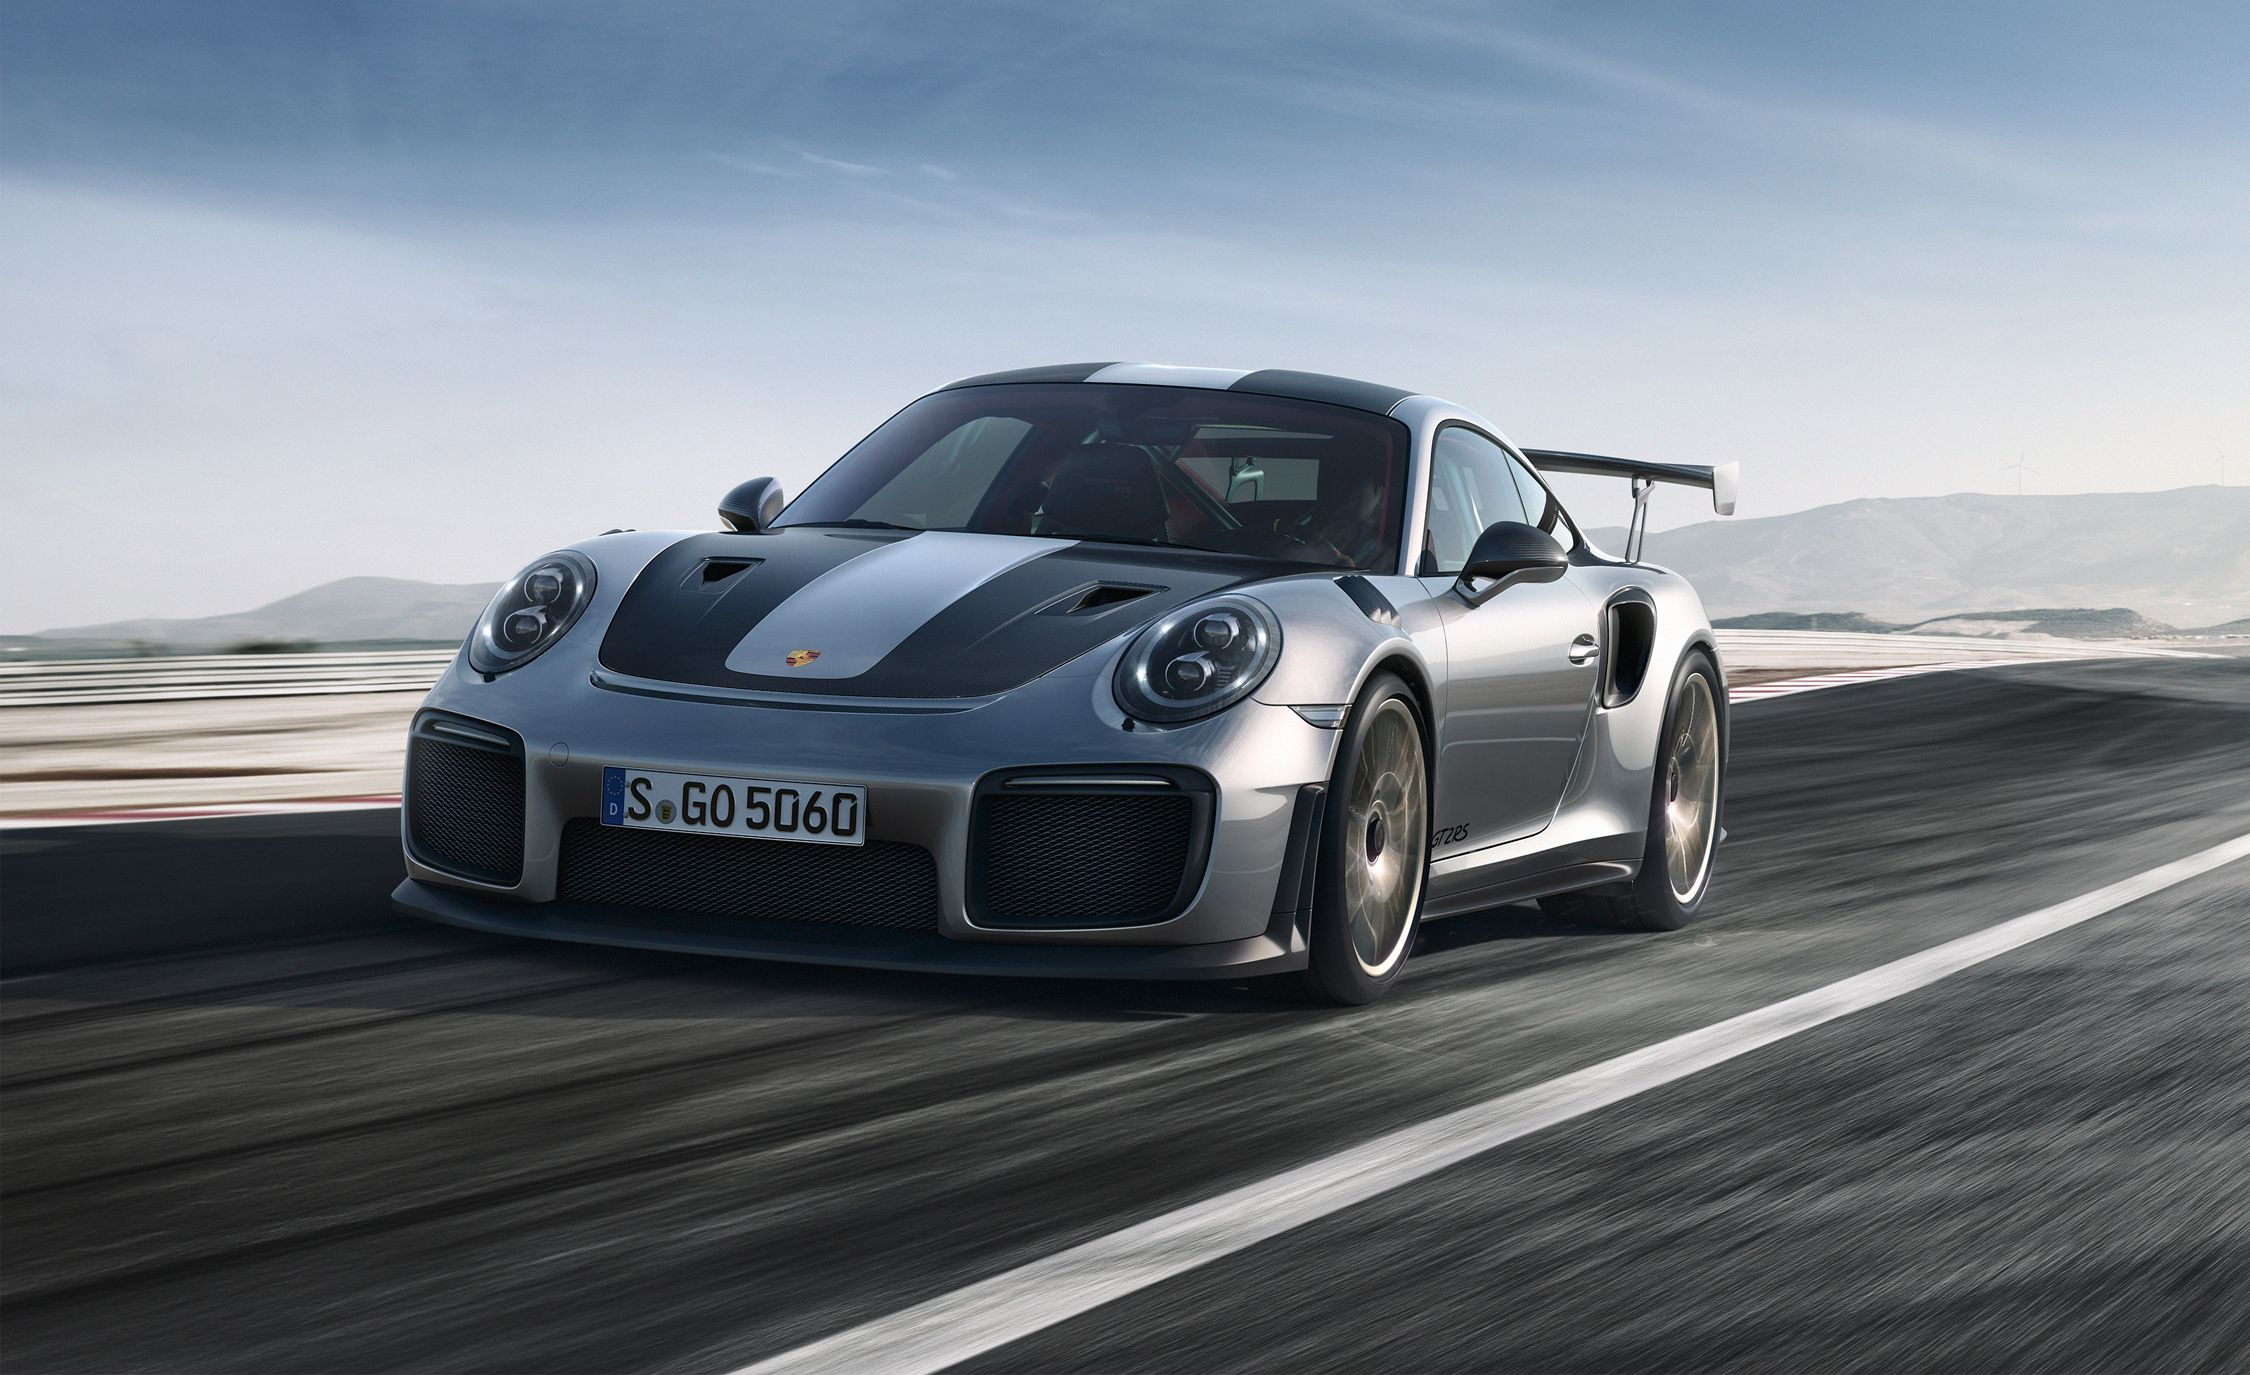 2018 Porsche 911 GT2 RS Photos and Info | News | Car and Driver